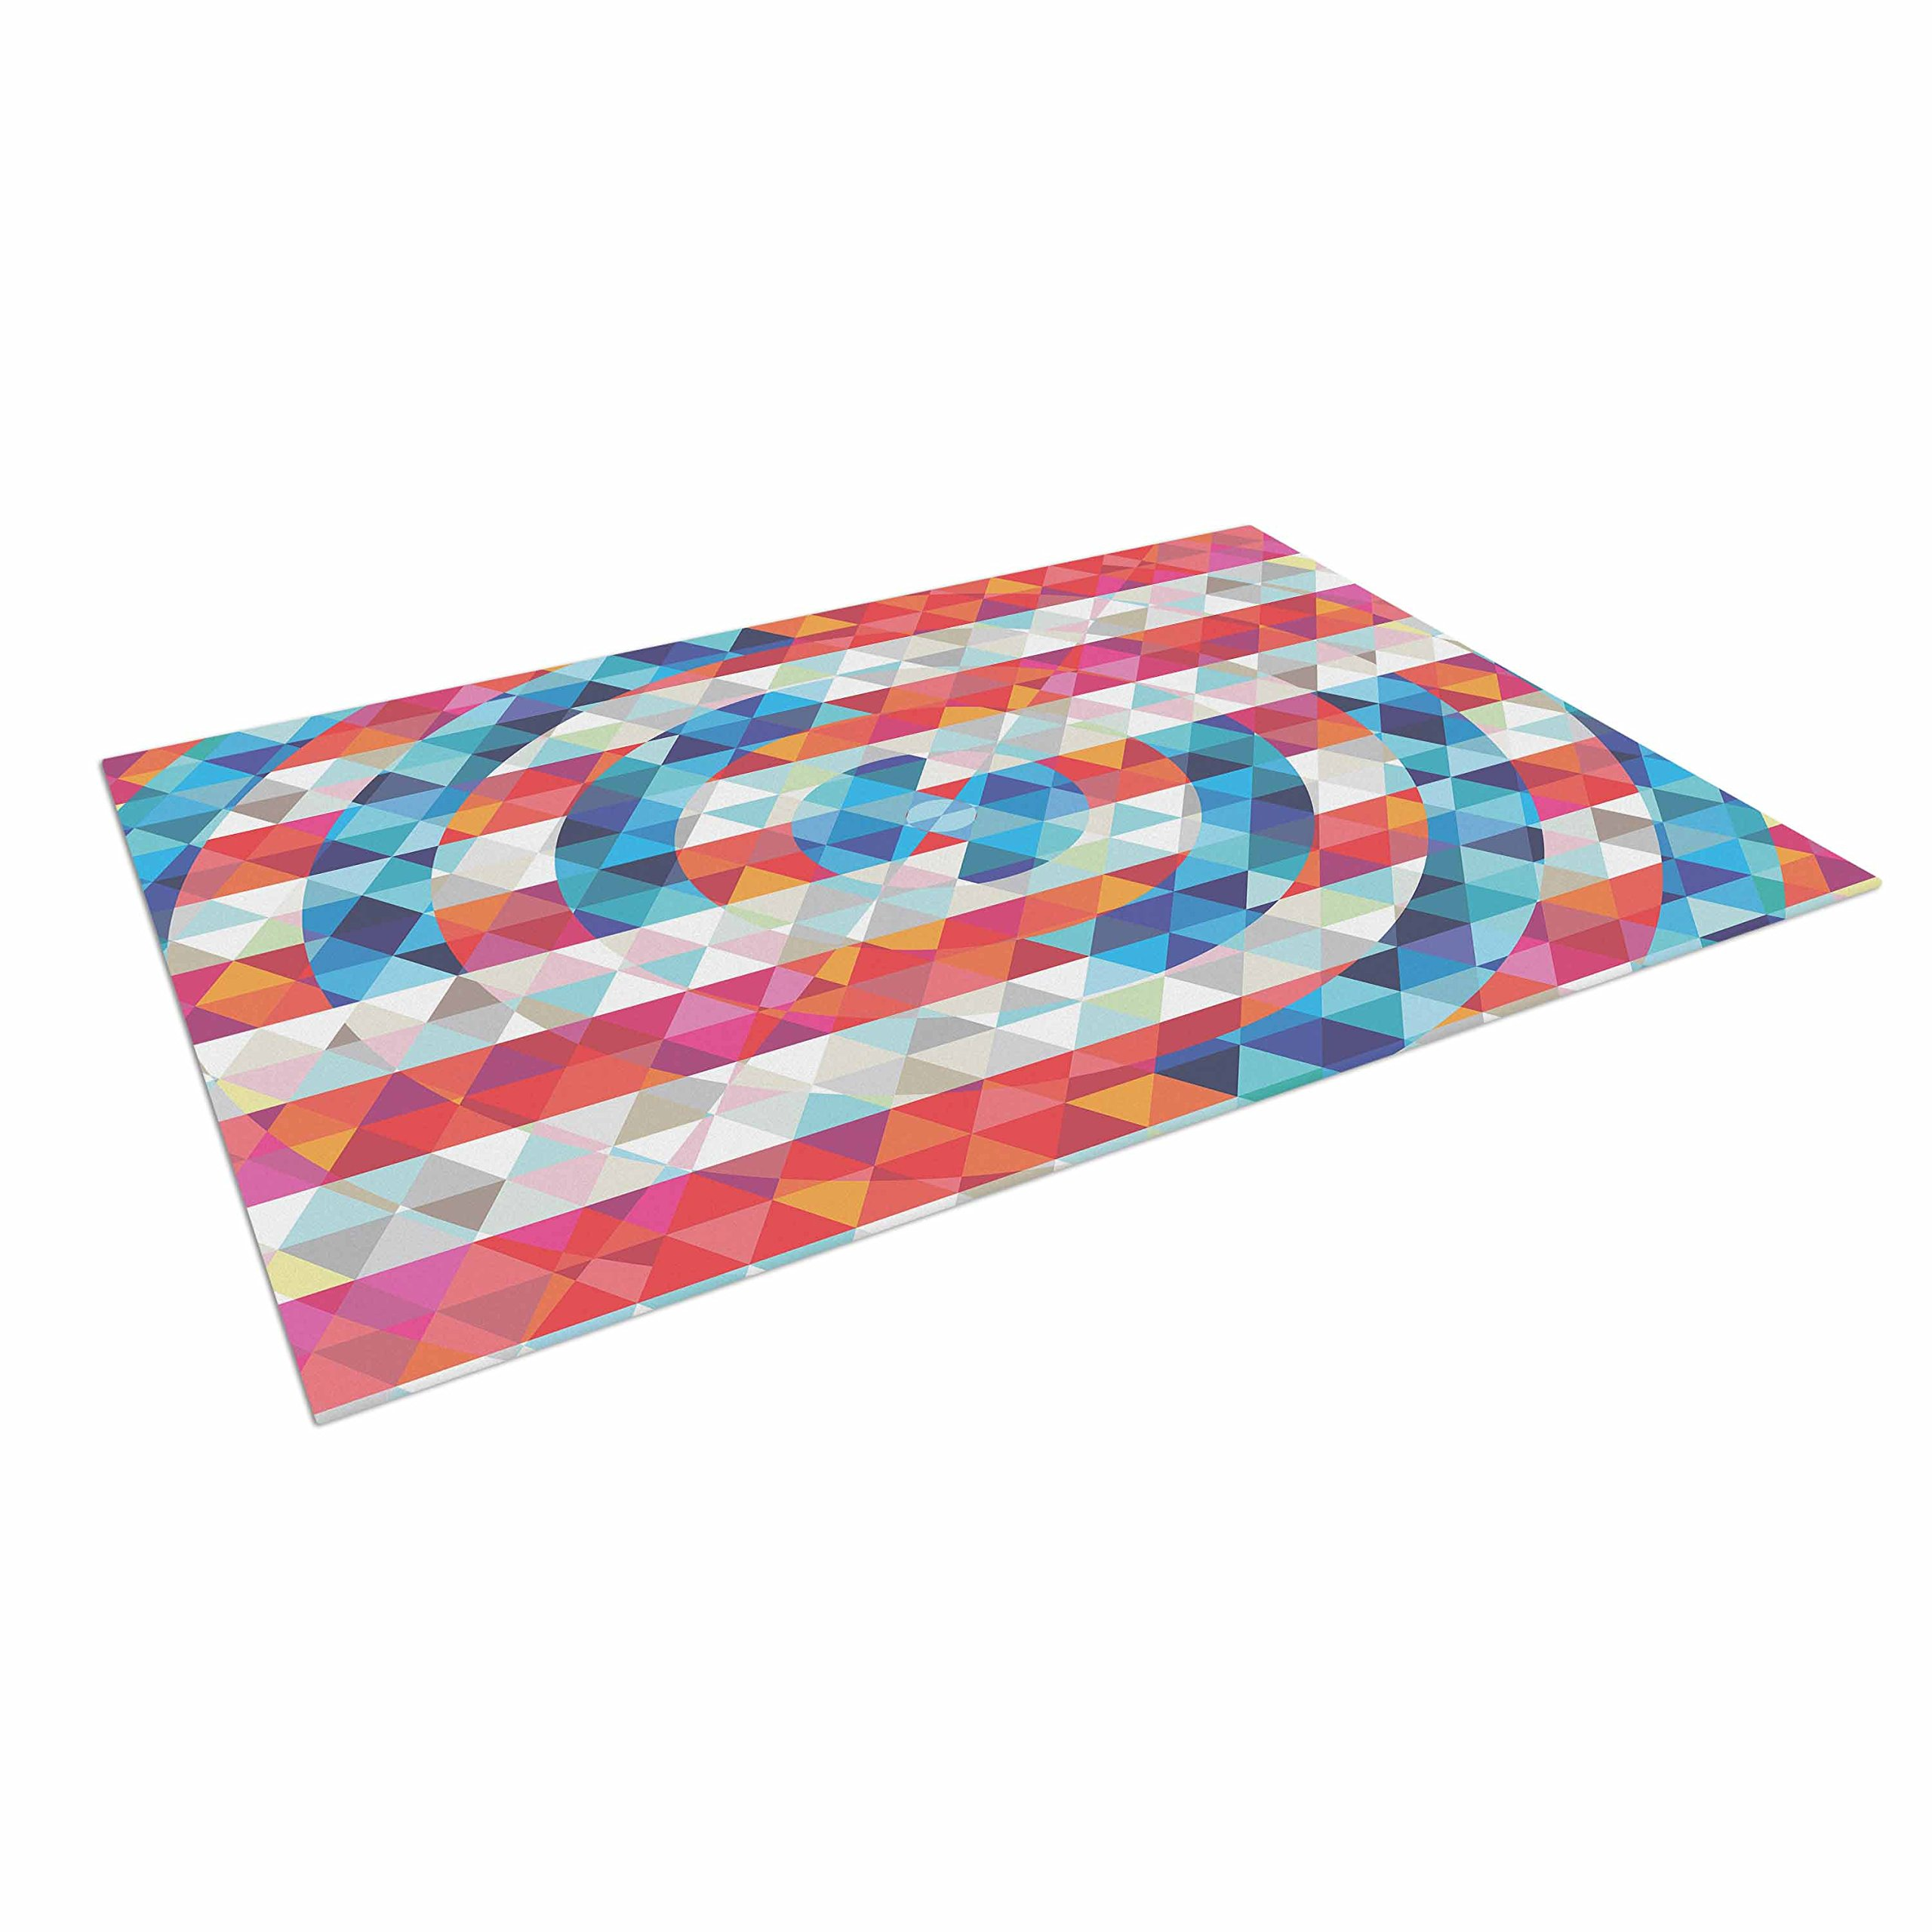 KESS InHouse Fimbis ''Abstract America'' Digital Outdoor Floor Mat, 4' x 5'